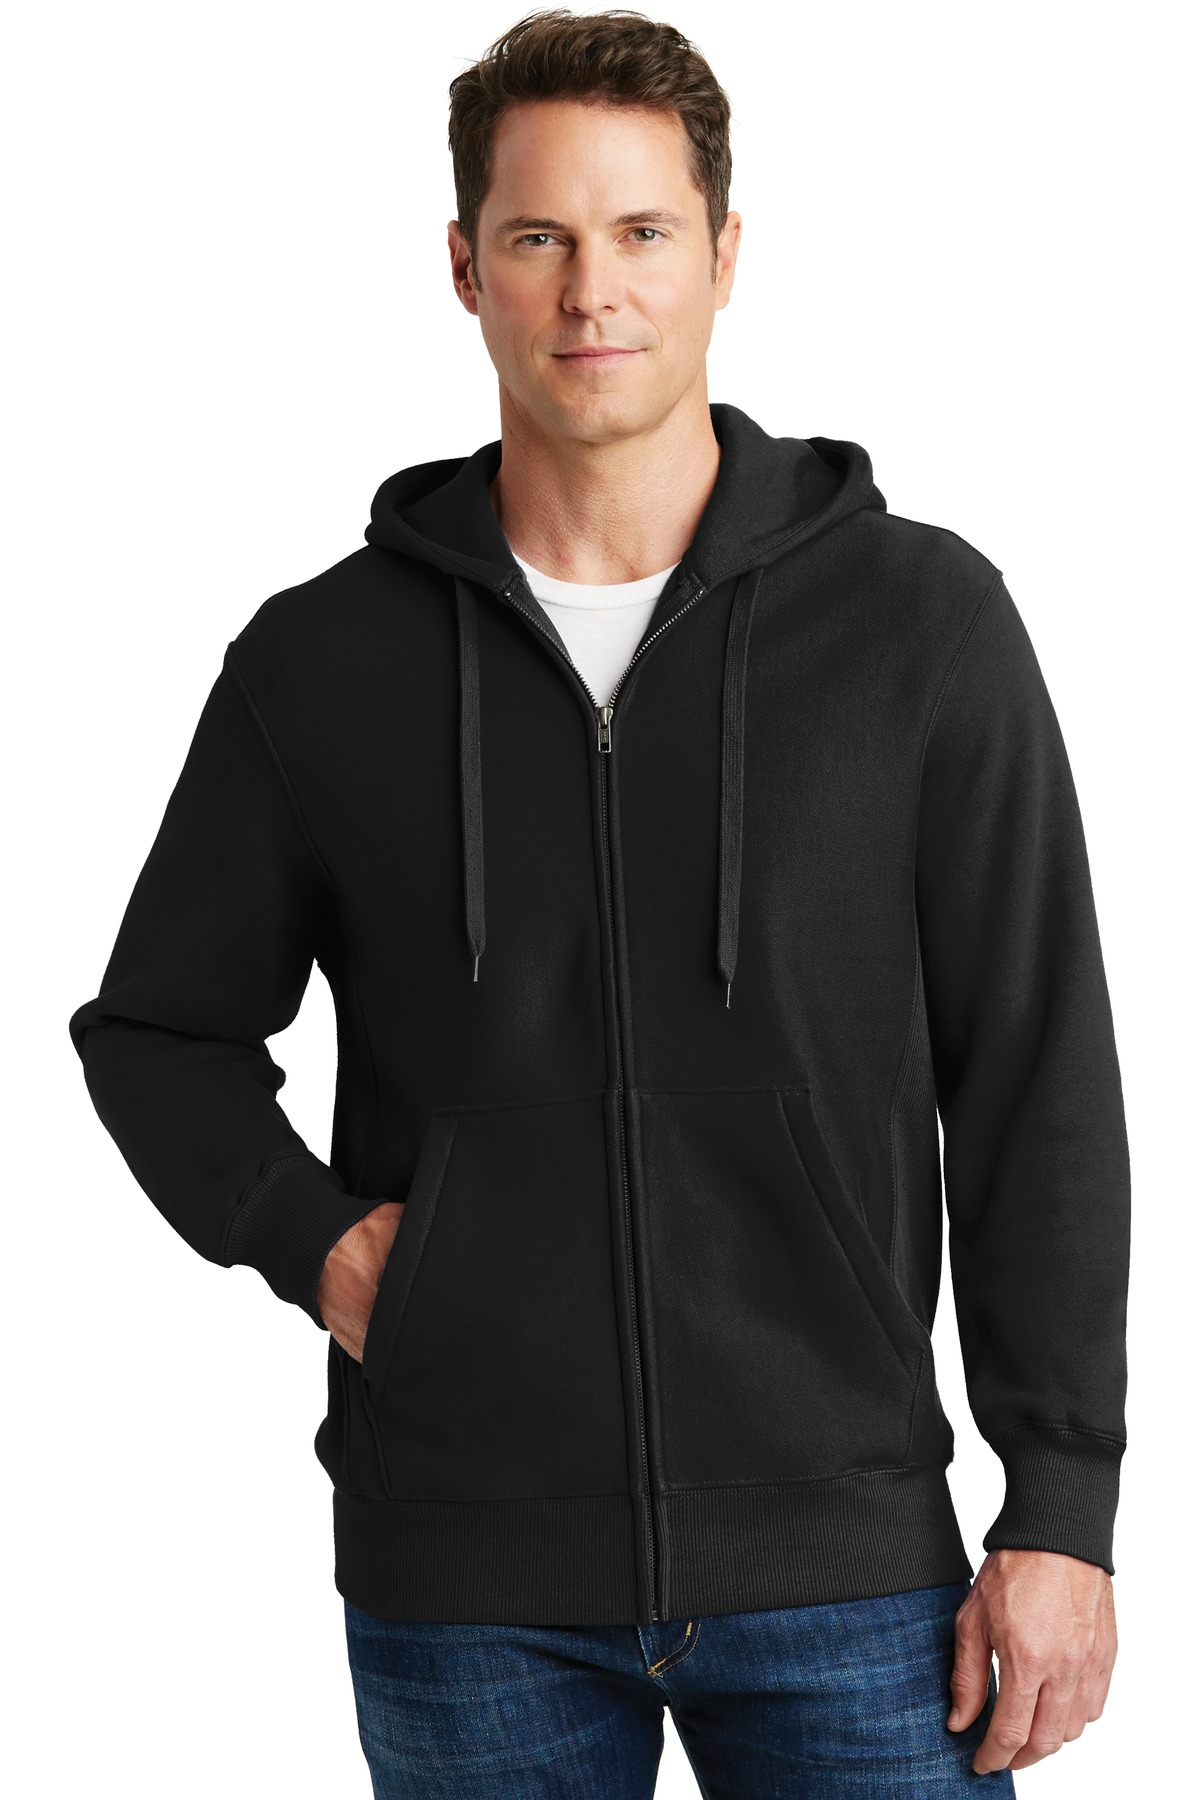 Sport-Tek ®  Super Heavyweight Full-Zip Hooded Sweatshirt.  F282 - Black